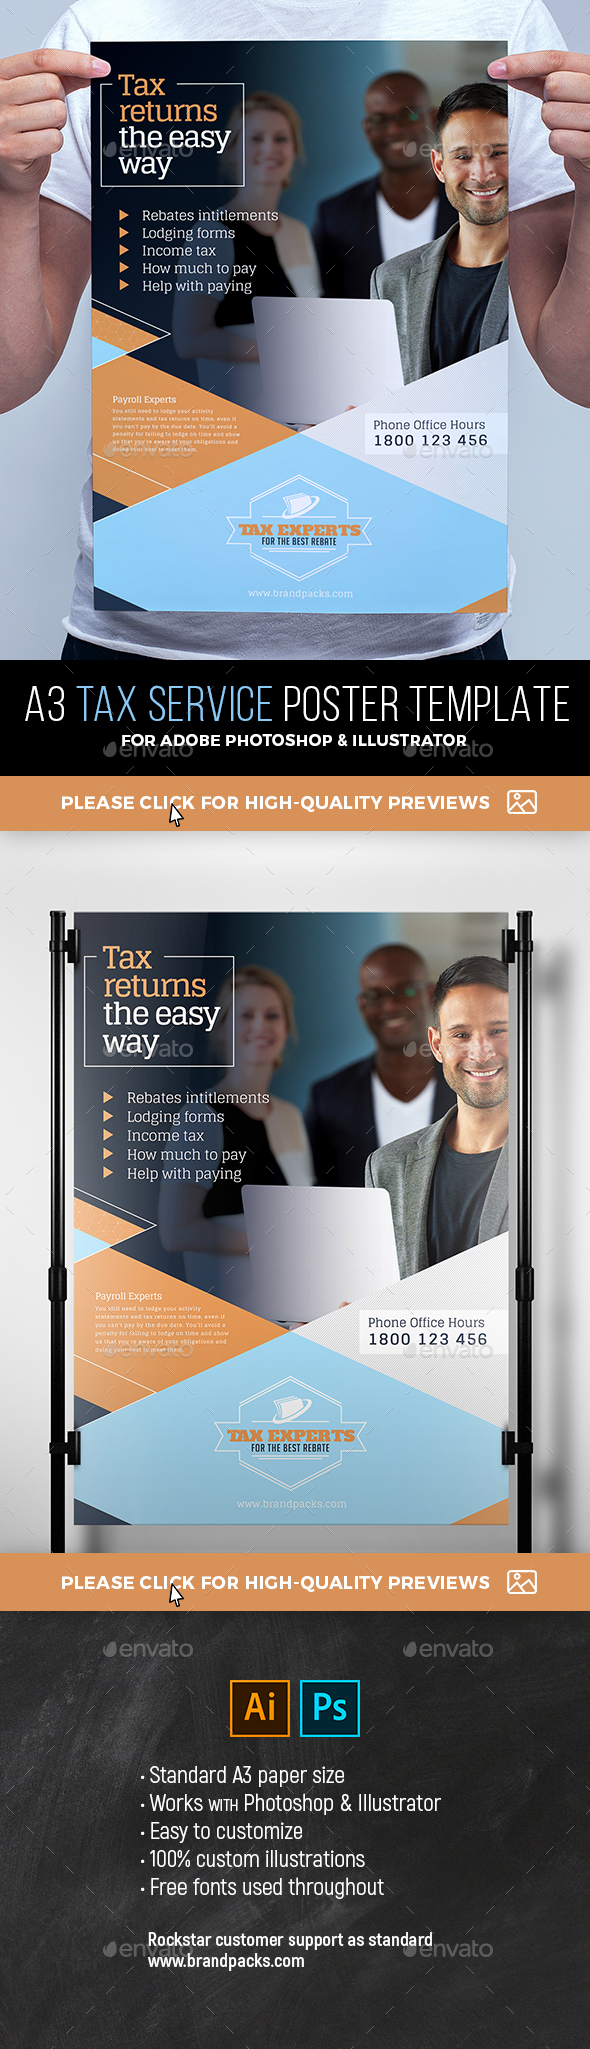 Tax Service Poster Template - Corporate Flyers